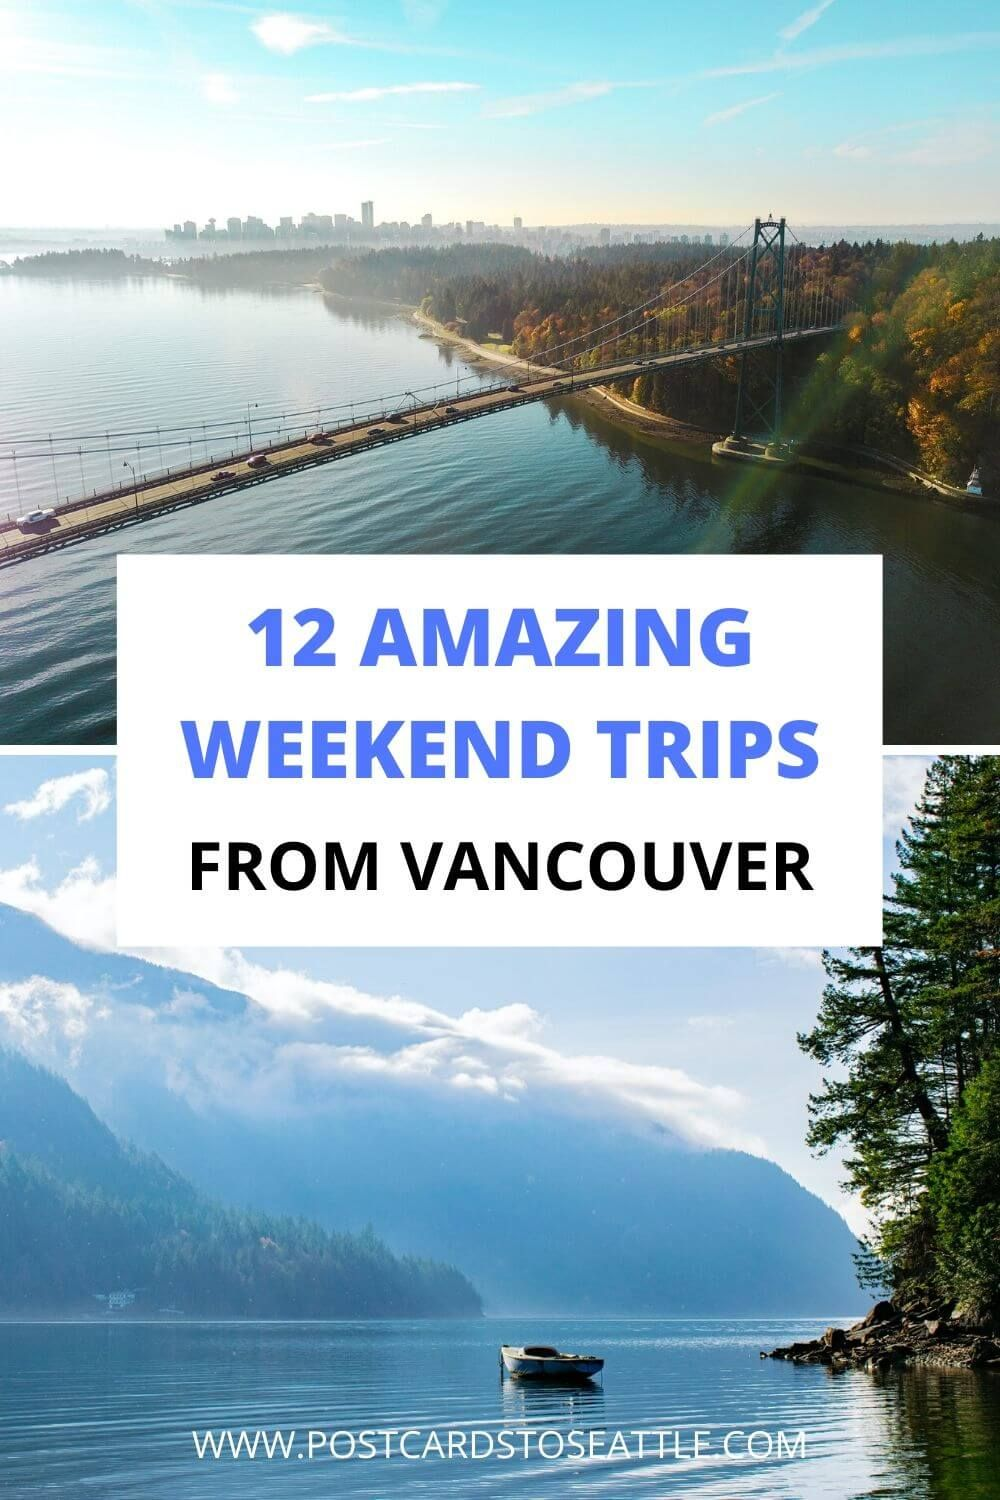 12 Amazing Weekend Getaways From Vancouver Bc To Book In 2020 Canada Travel Vancouver Vacation Canada Travel Guide